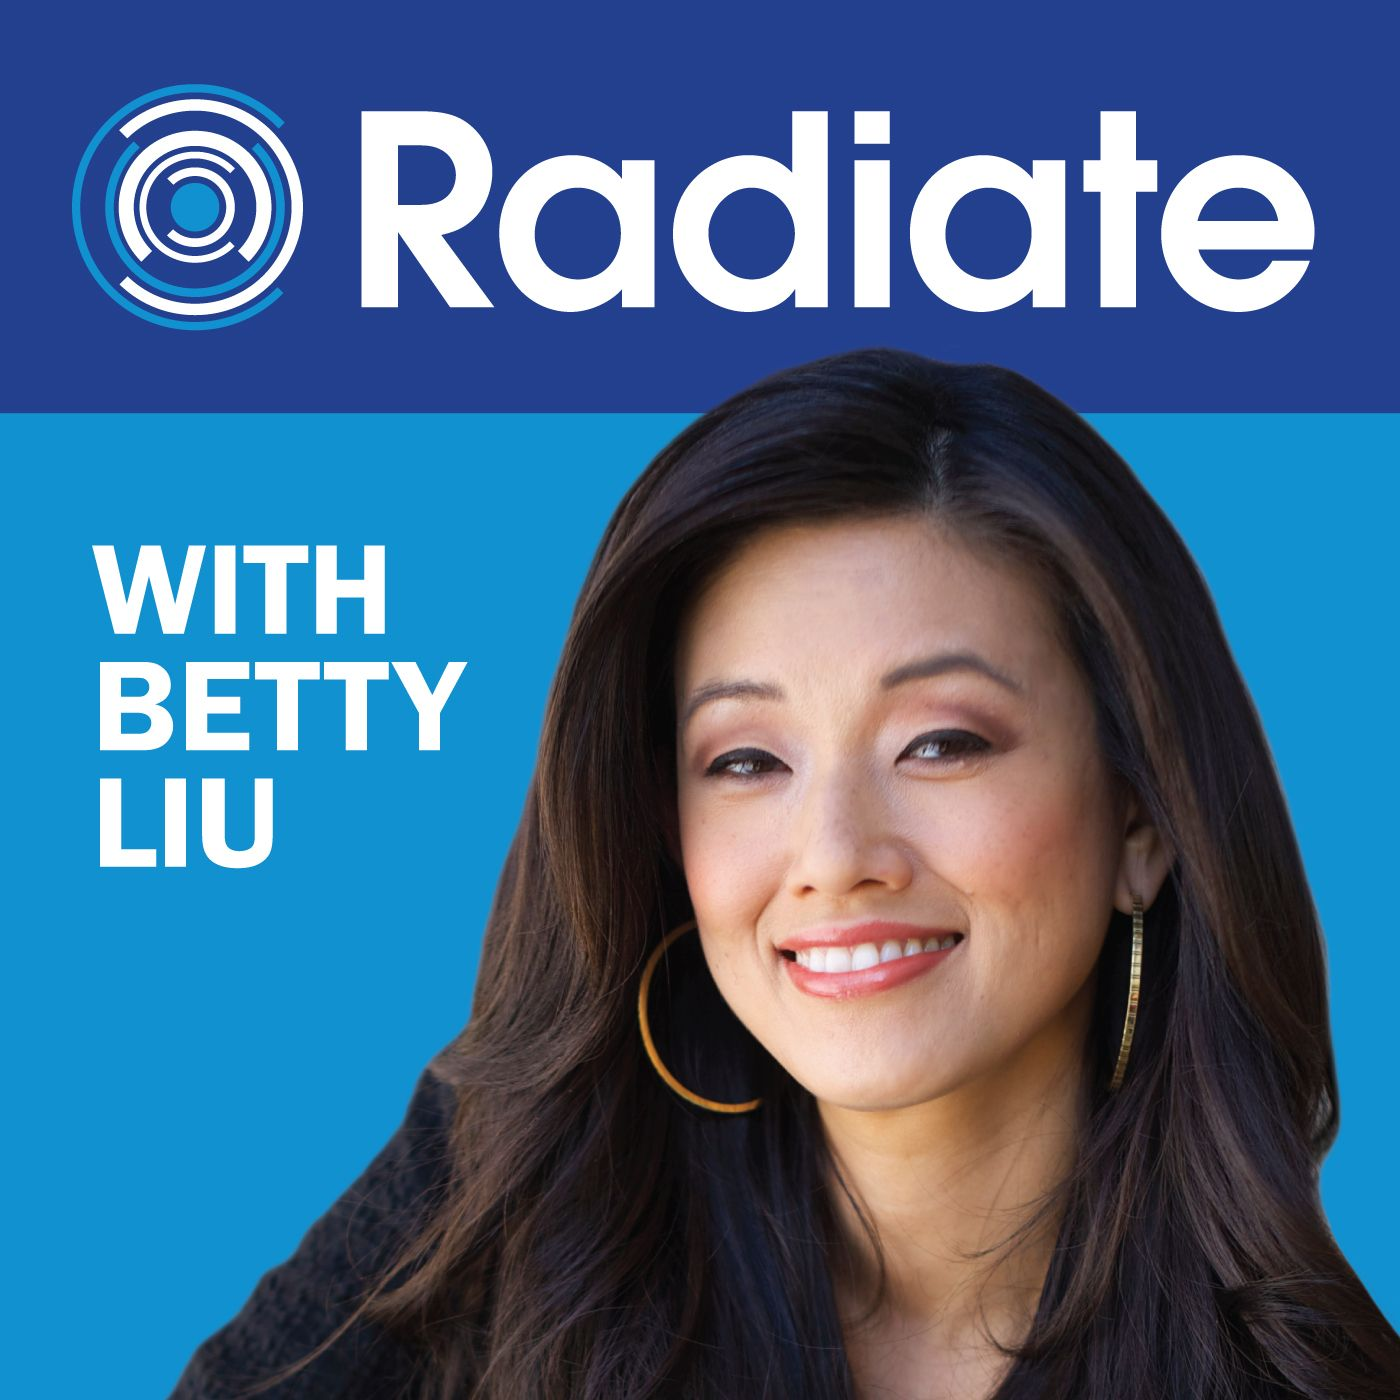 Radiate with Betty Liu